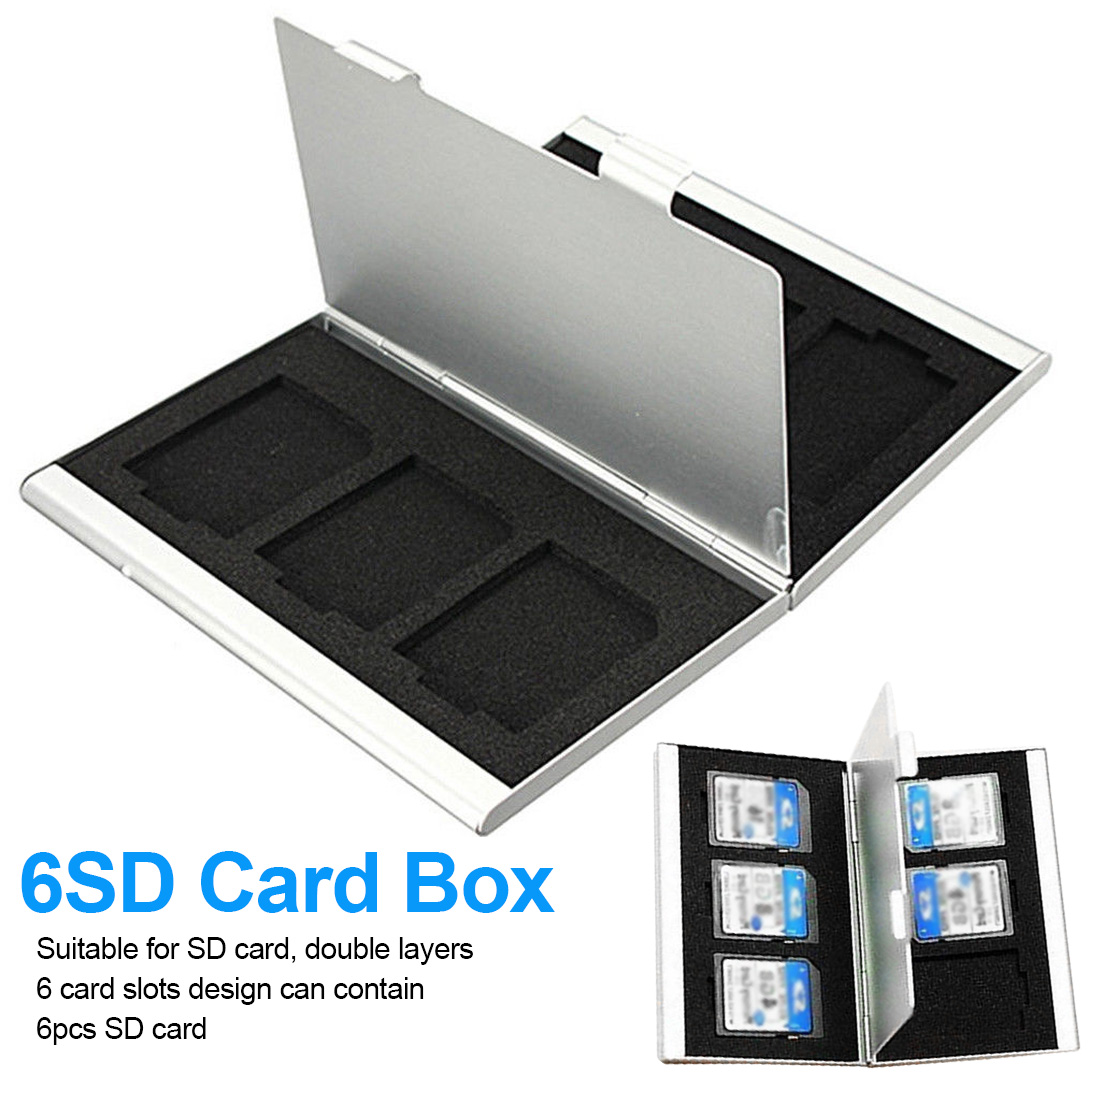 6 Slots Dougle-desk Aluminum Storage Box For SD SDHC SDXC MMC Memory Card Case Holder Protector